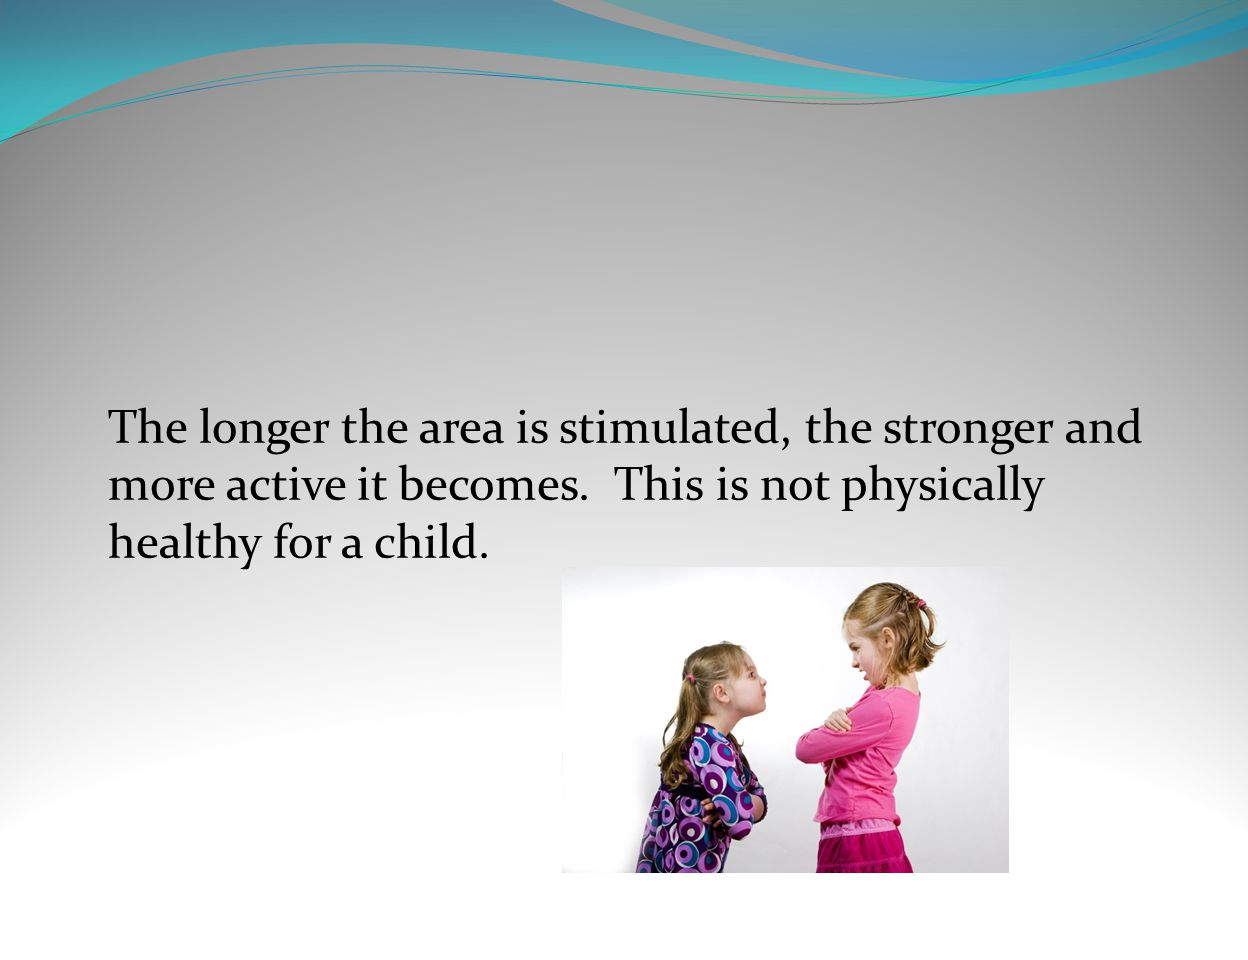 The longer the area is stimulated, the stronger and more active it becomes.